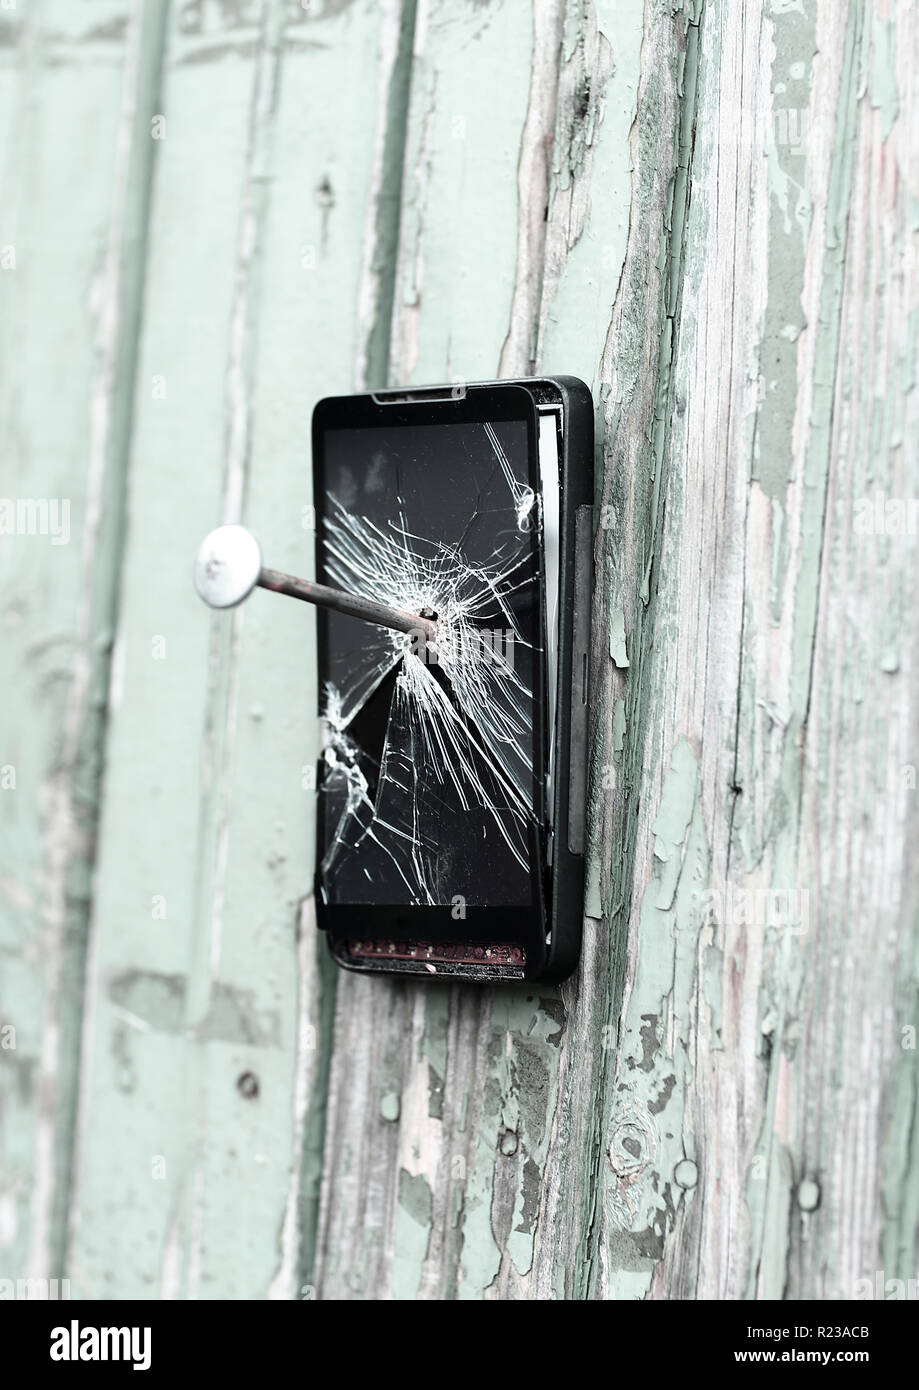 obsolete mobile phone is nailed to a wooden fence - Stock Image